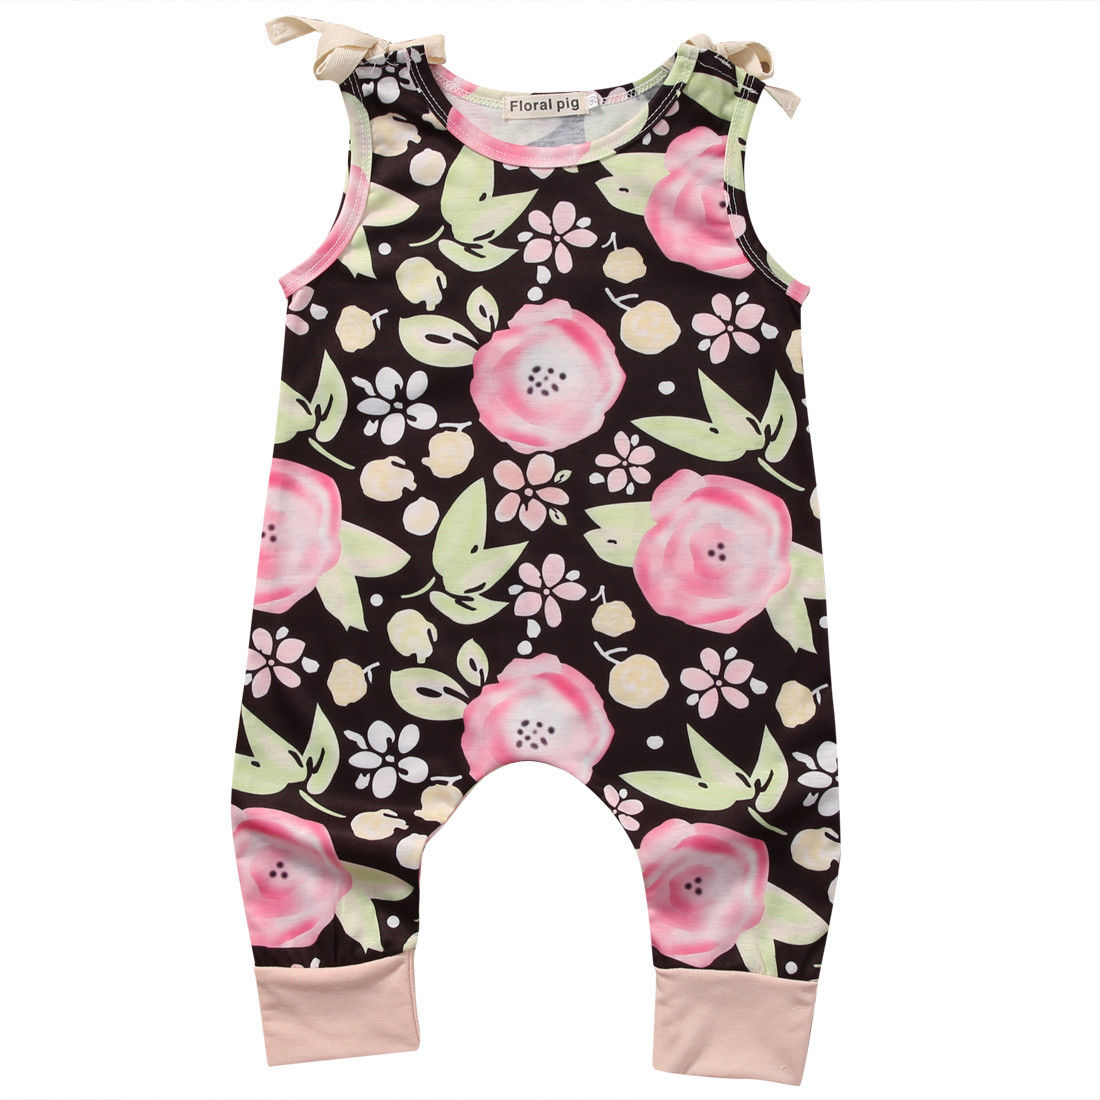 Cotton Toddler Kids Baby Girls Summer Strap Floral Romper Jumpsuit Pants Clothes Outfit